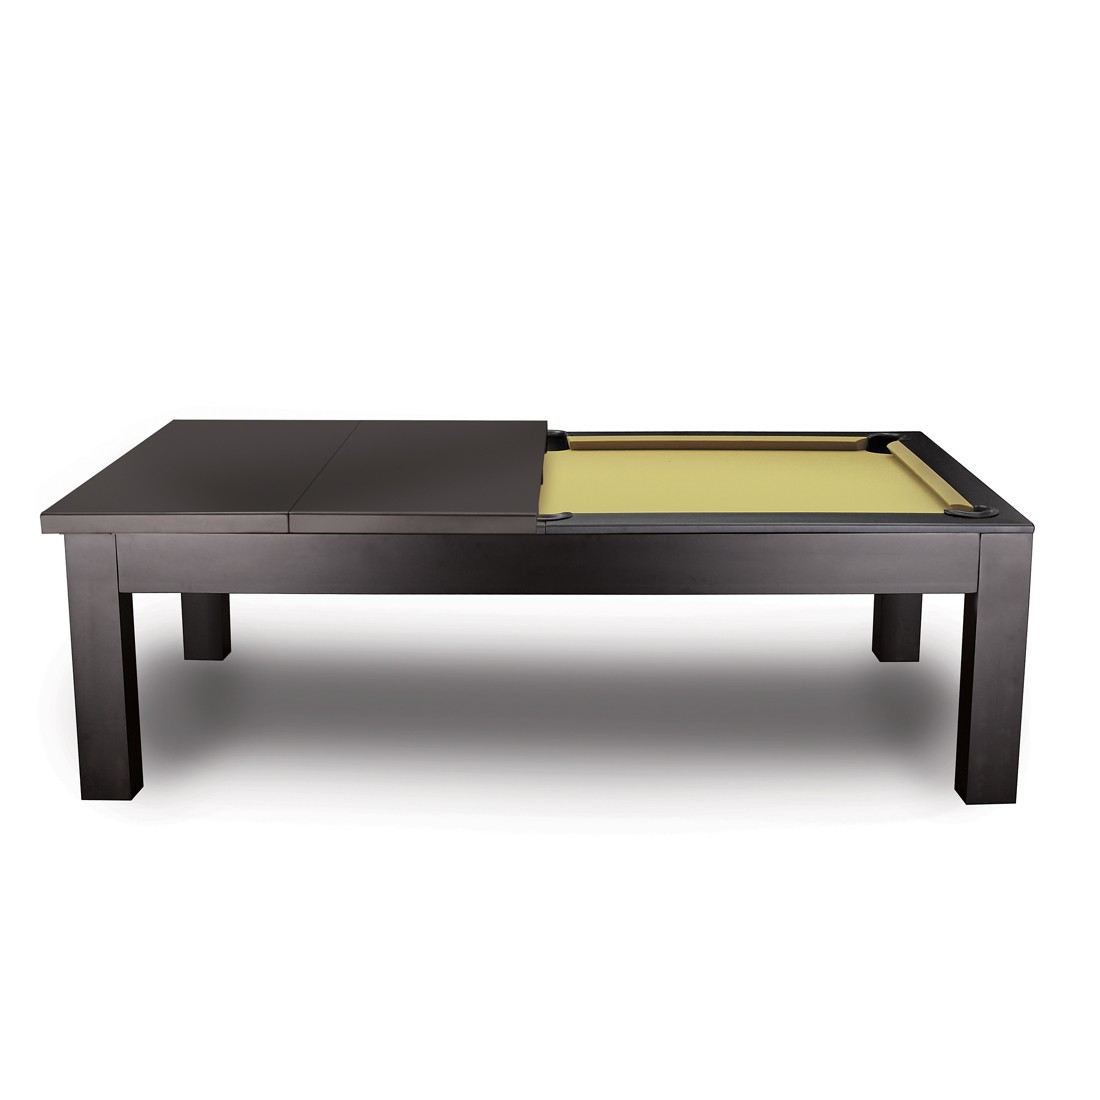 Merveilleux The Penelope 8u2032 Pool Table (Dark Walnut) W/Dining Top